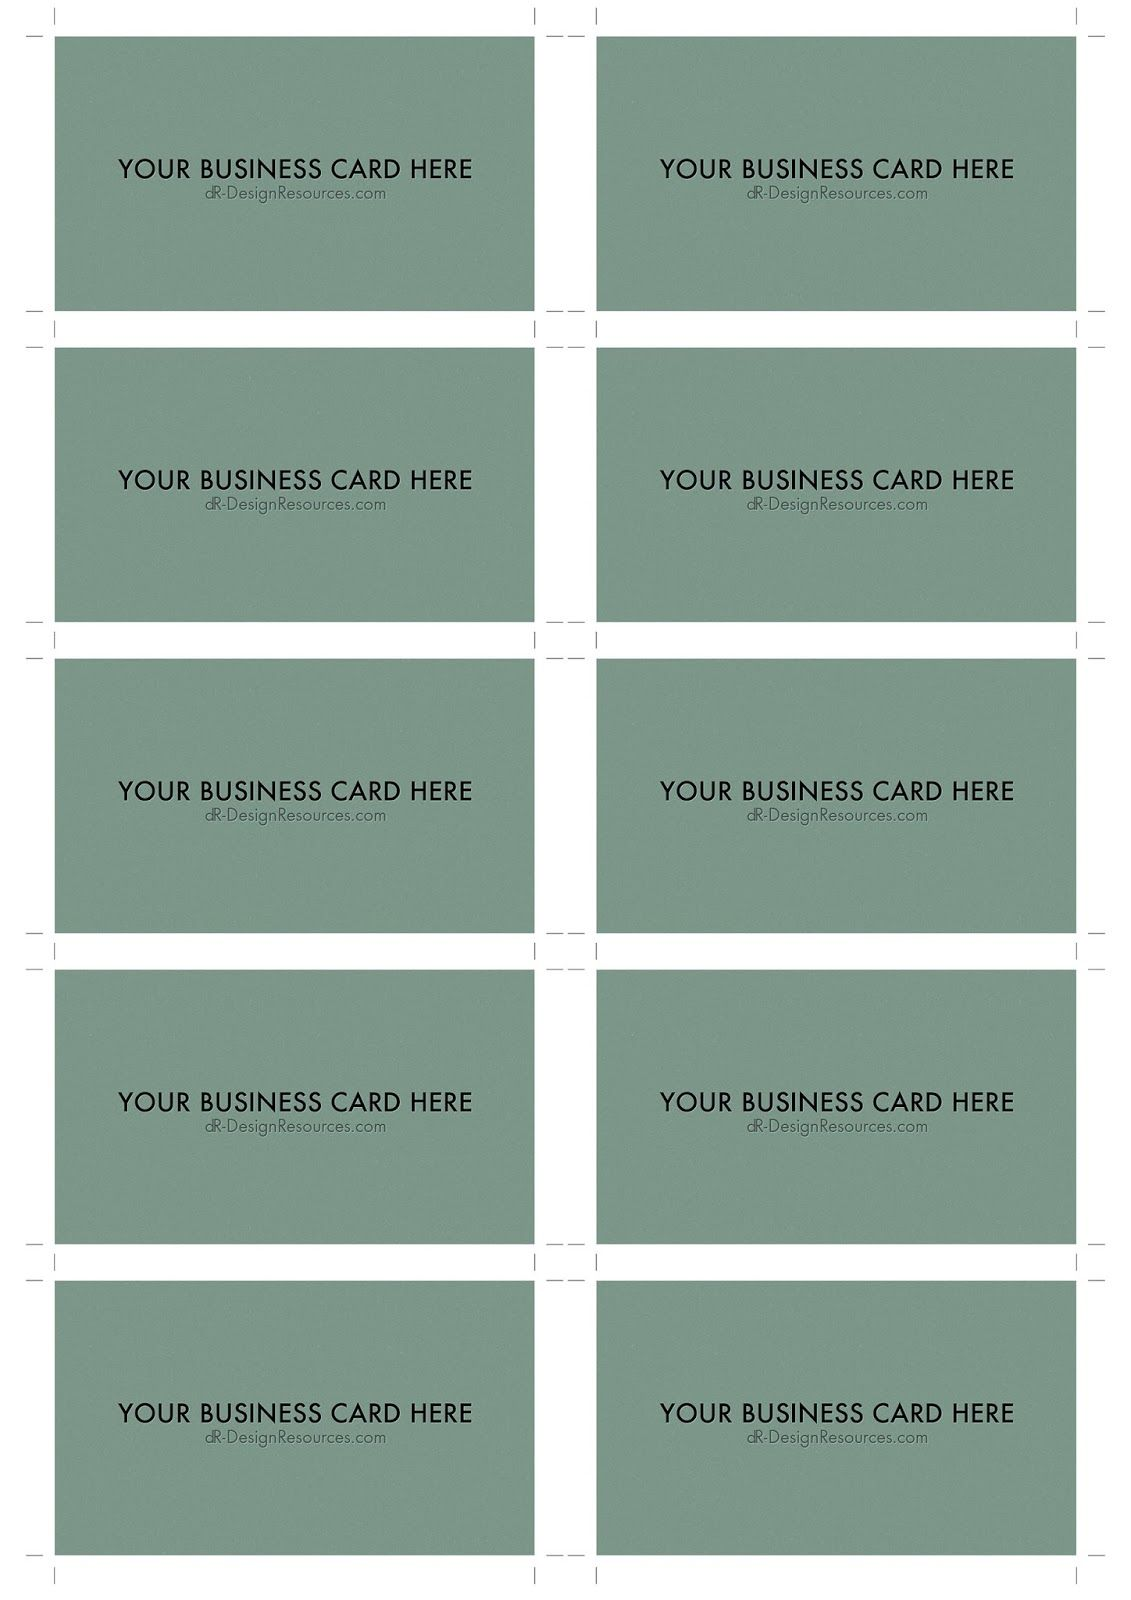 A4 business card template psd 10 per sheet business cards a4 business card template psd 10 per sheet accmission Images